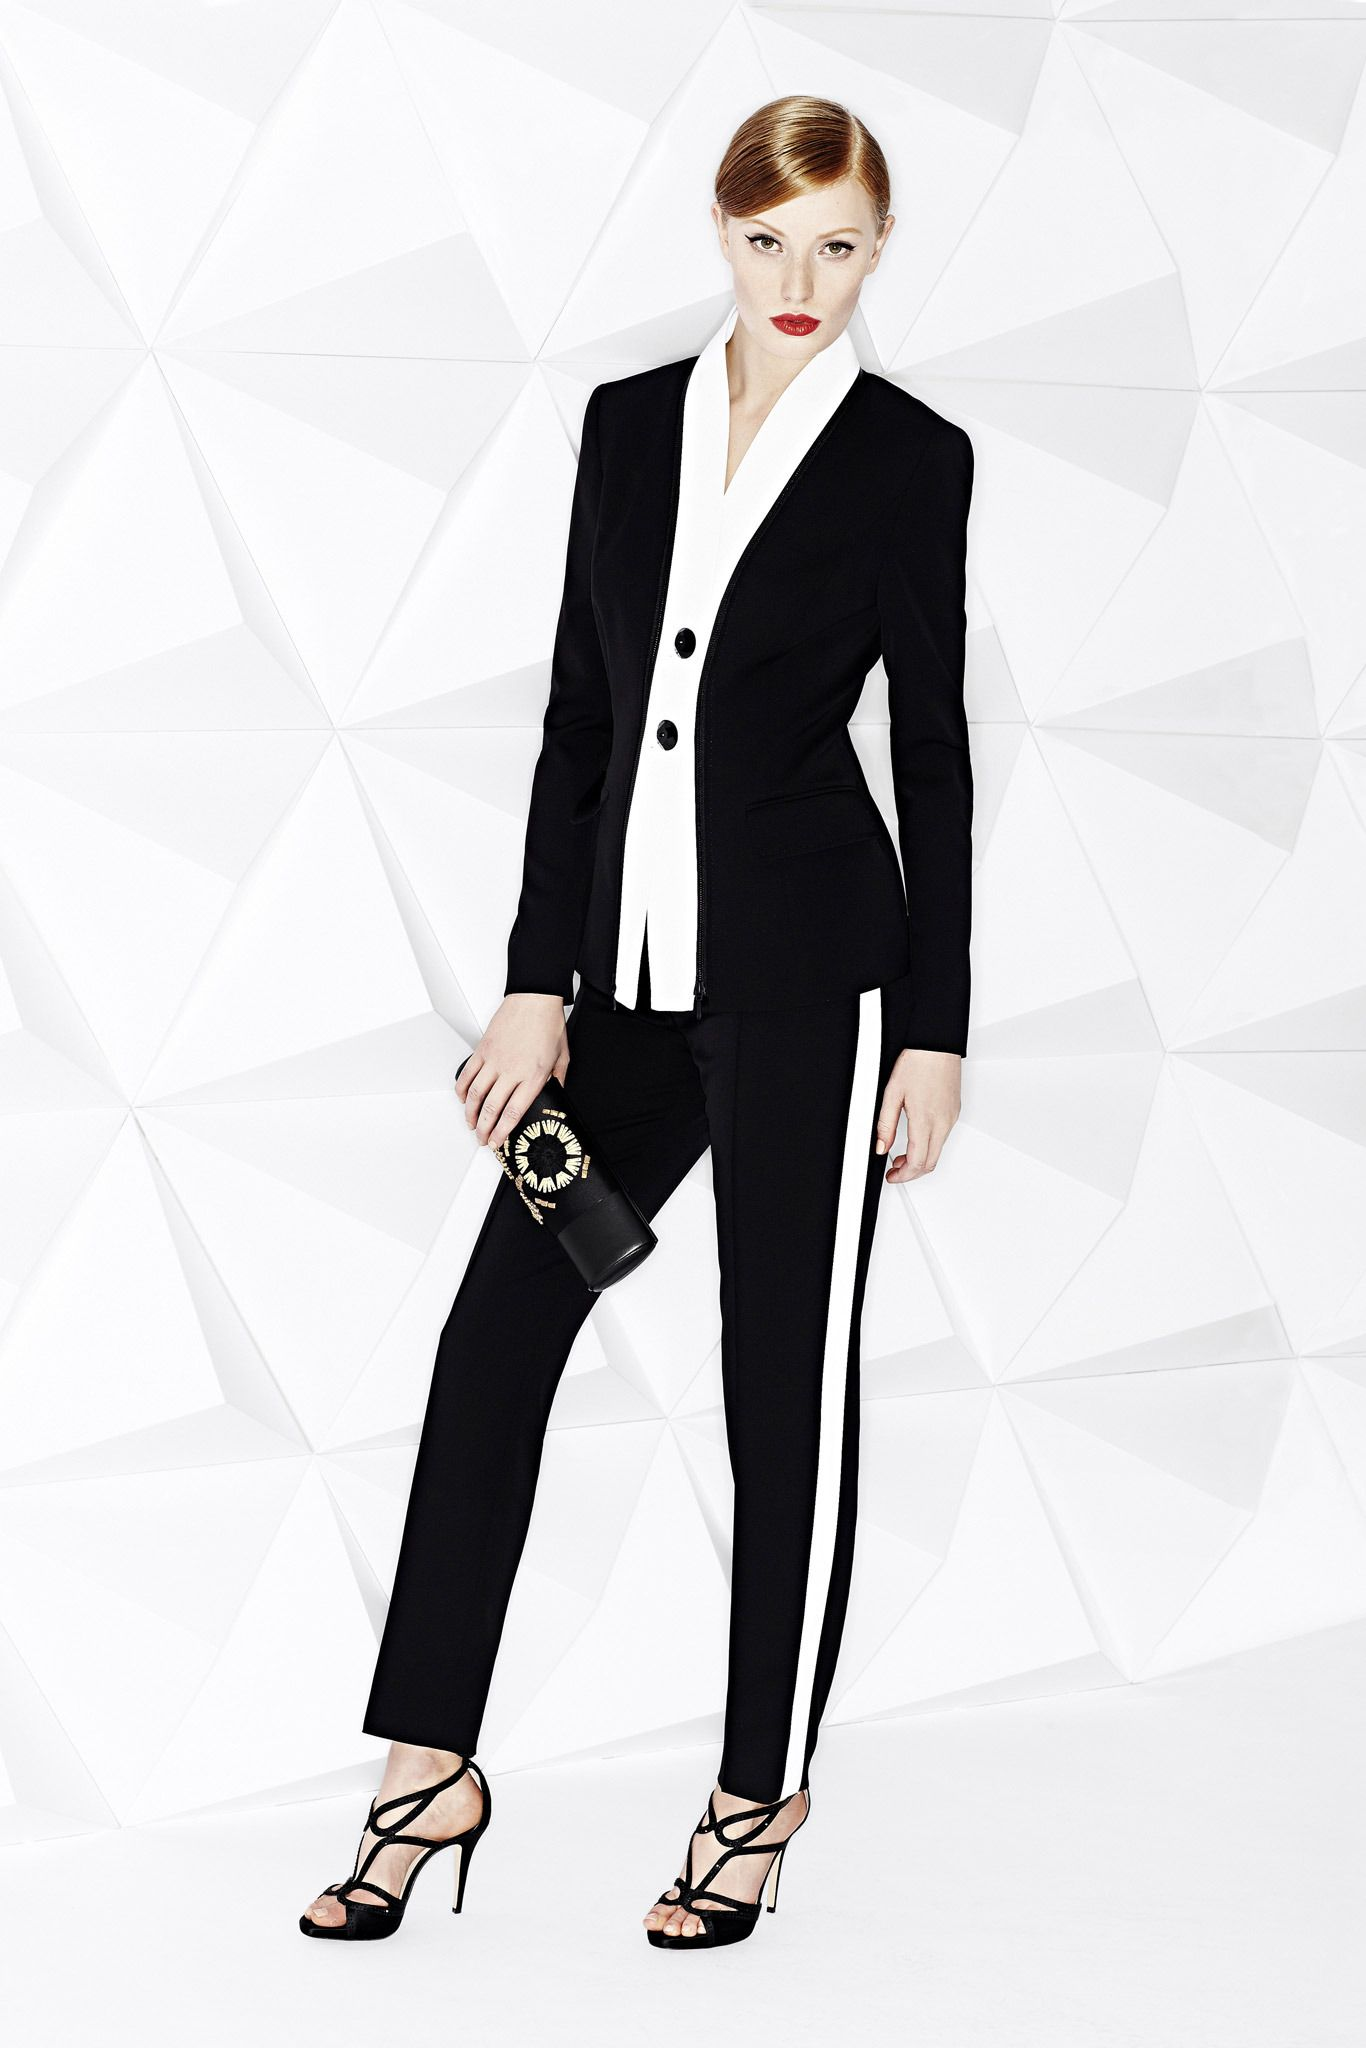 Escada Resort 2015 Collection Fashion Womens Suits Business